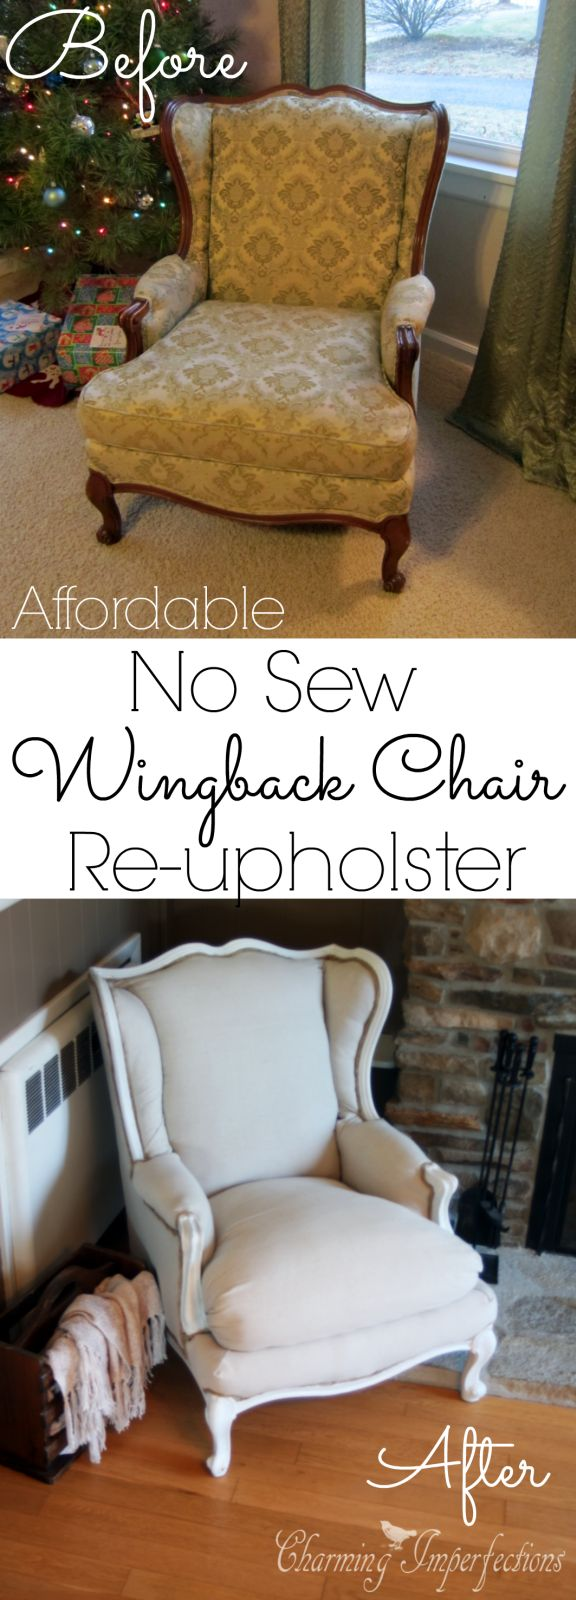 25+ Unique No Sew Slipcover Ideas On Pinterest | Sectional Couch Cover,  Sectional Sofa Slipcovers And Diy Couch Covers